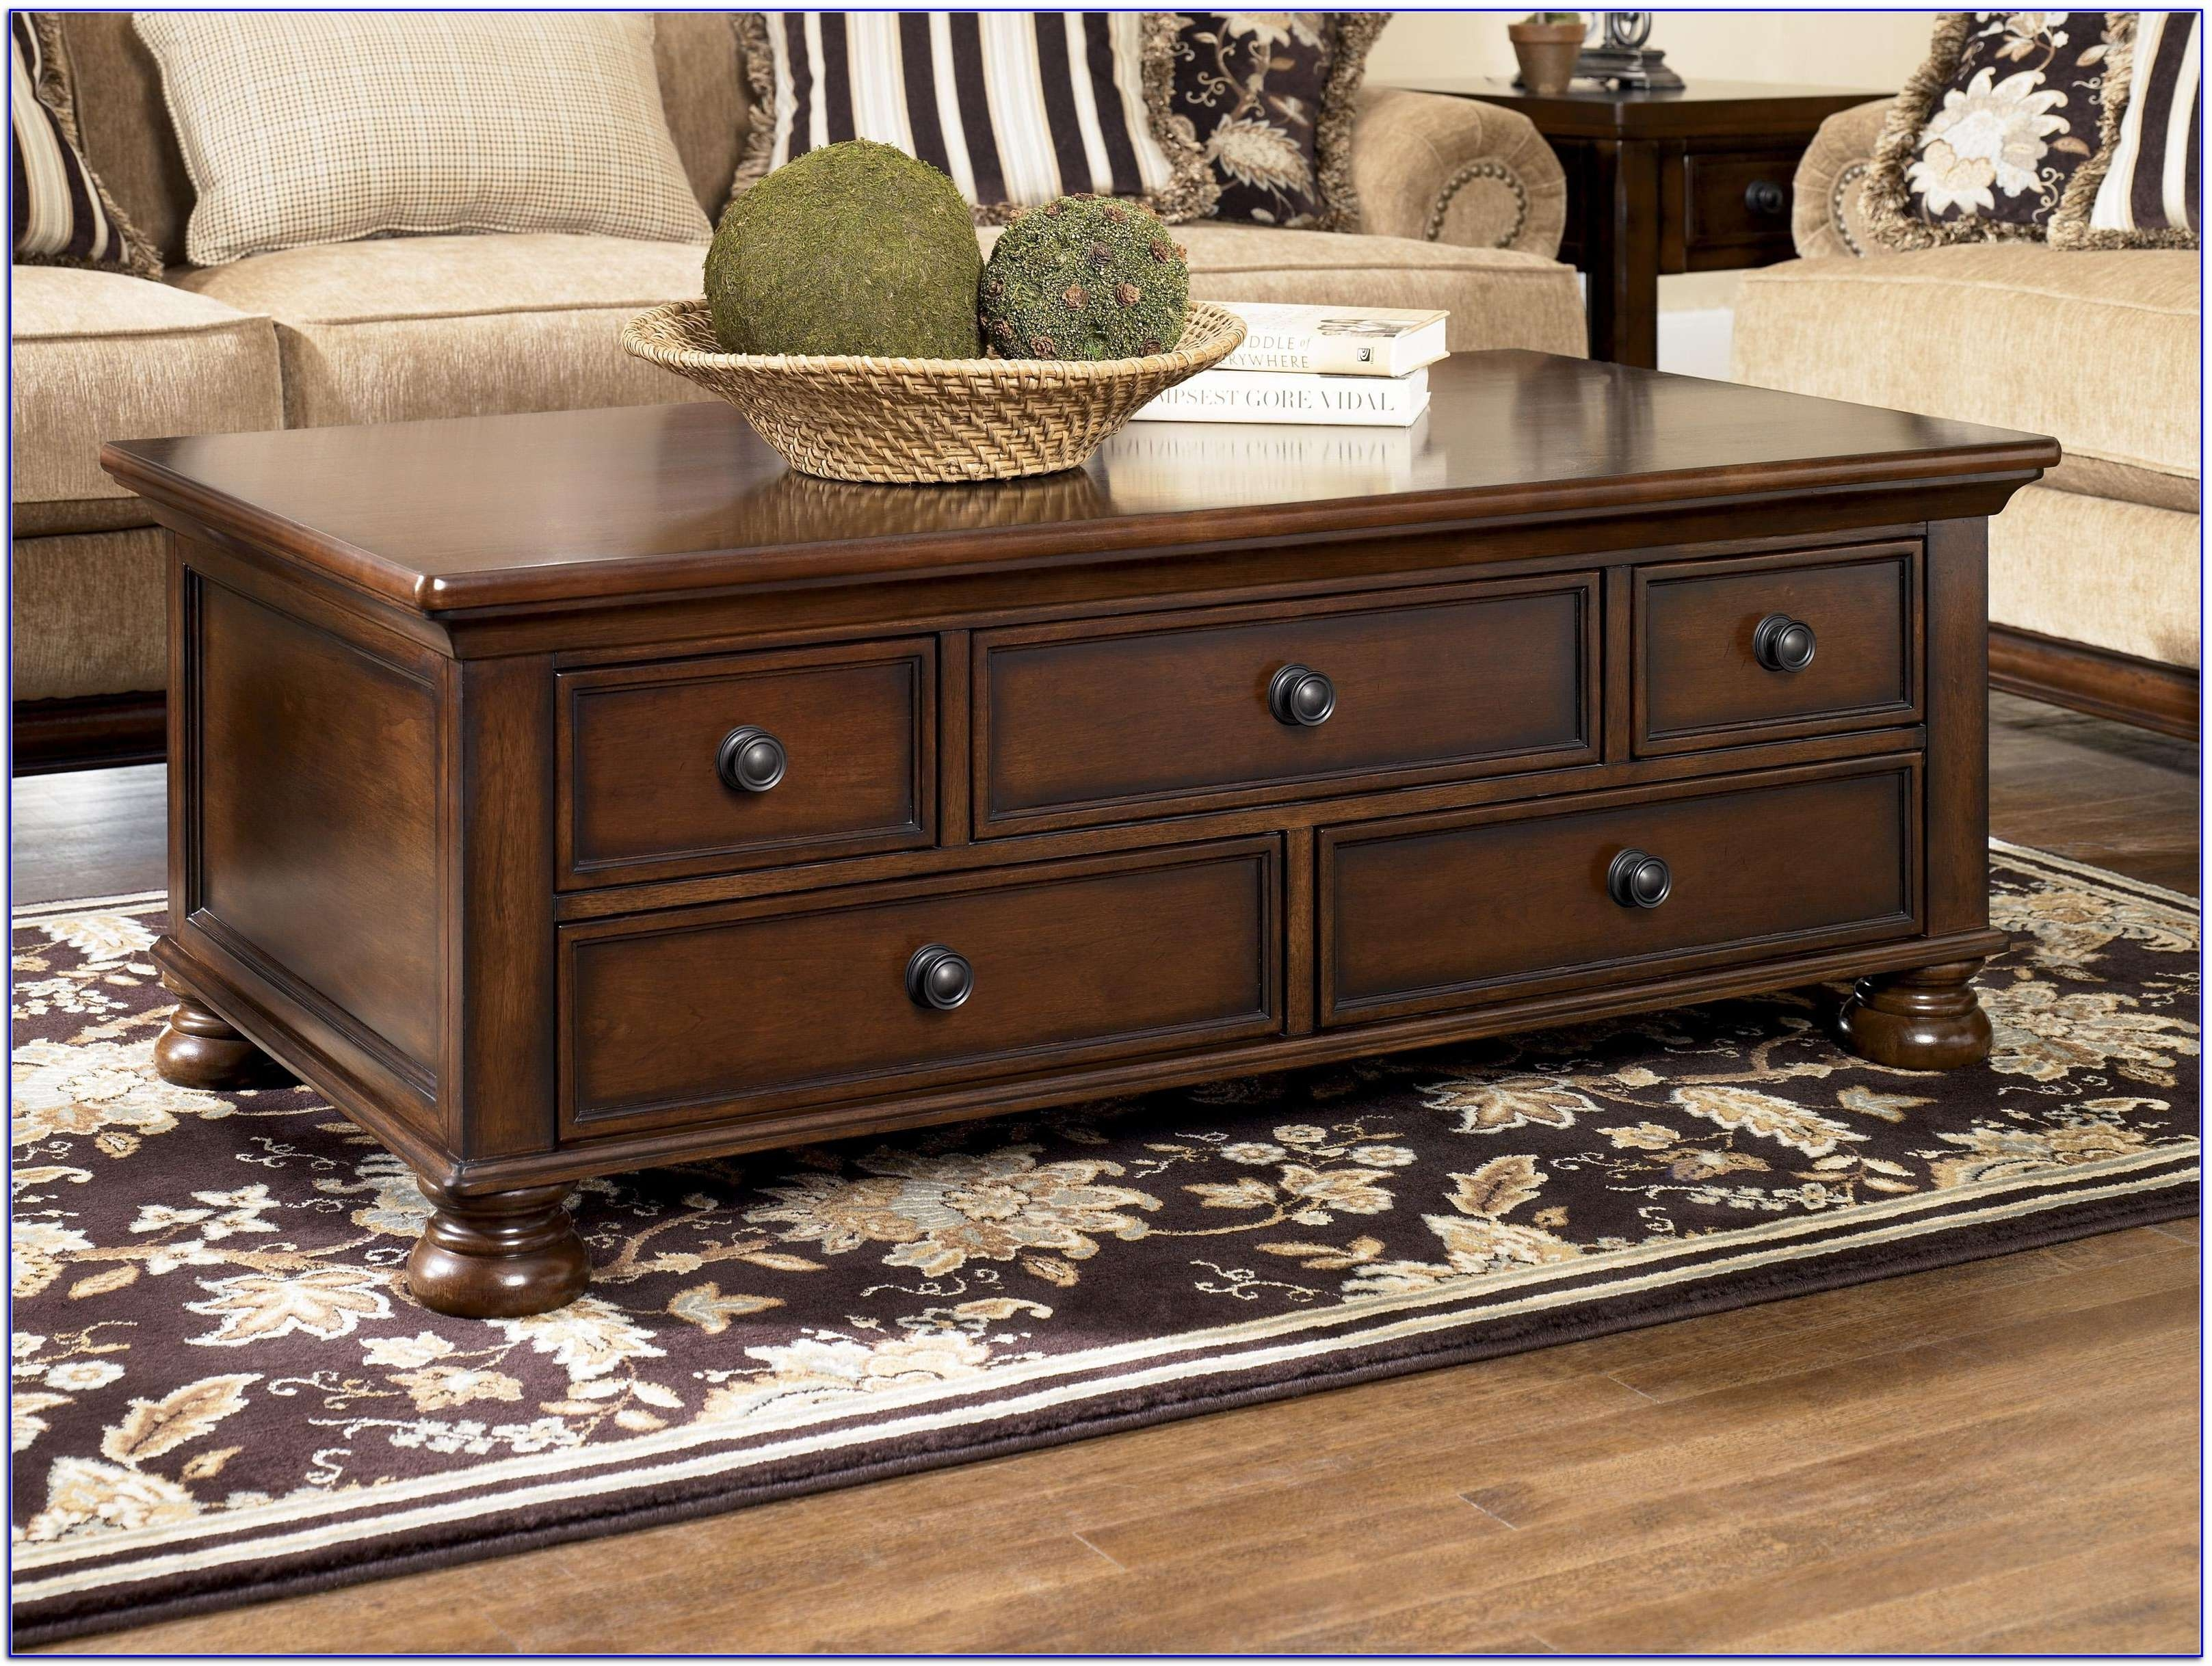 Most Recent Huge Coffee Tables Regarding Coffee Table : Inch Square Coffee Table Huge Coffee Table Large (View 16 of 20)